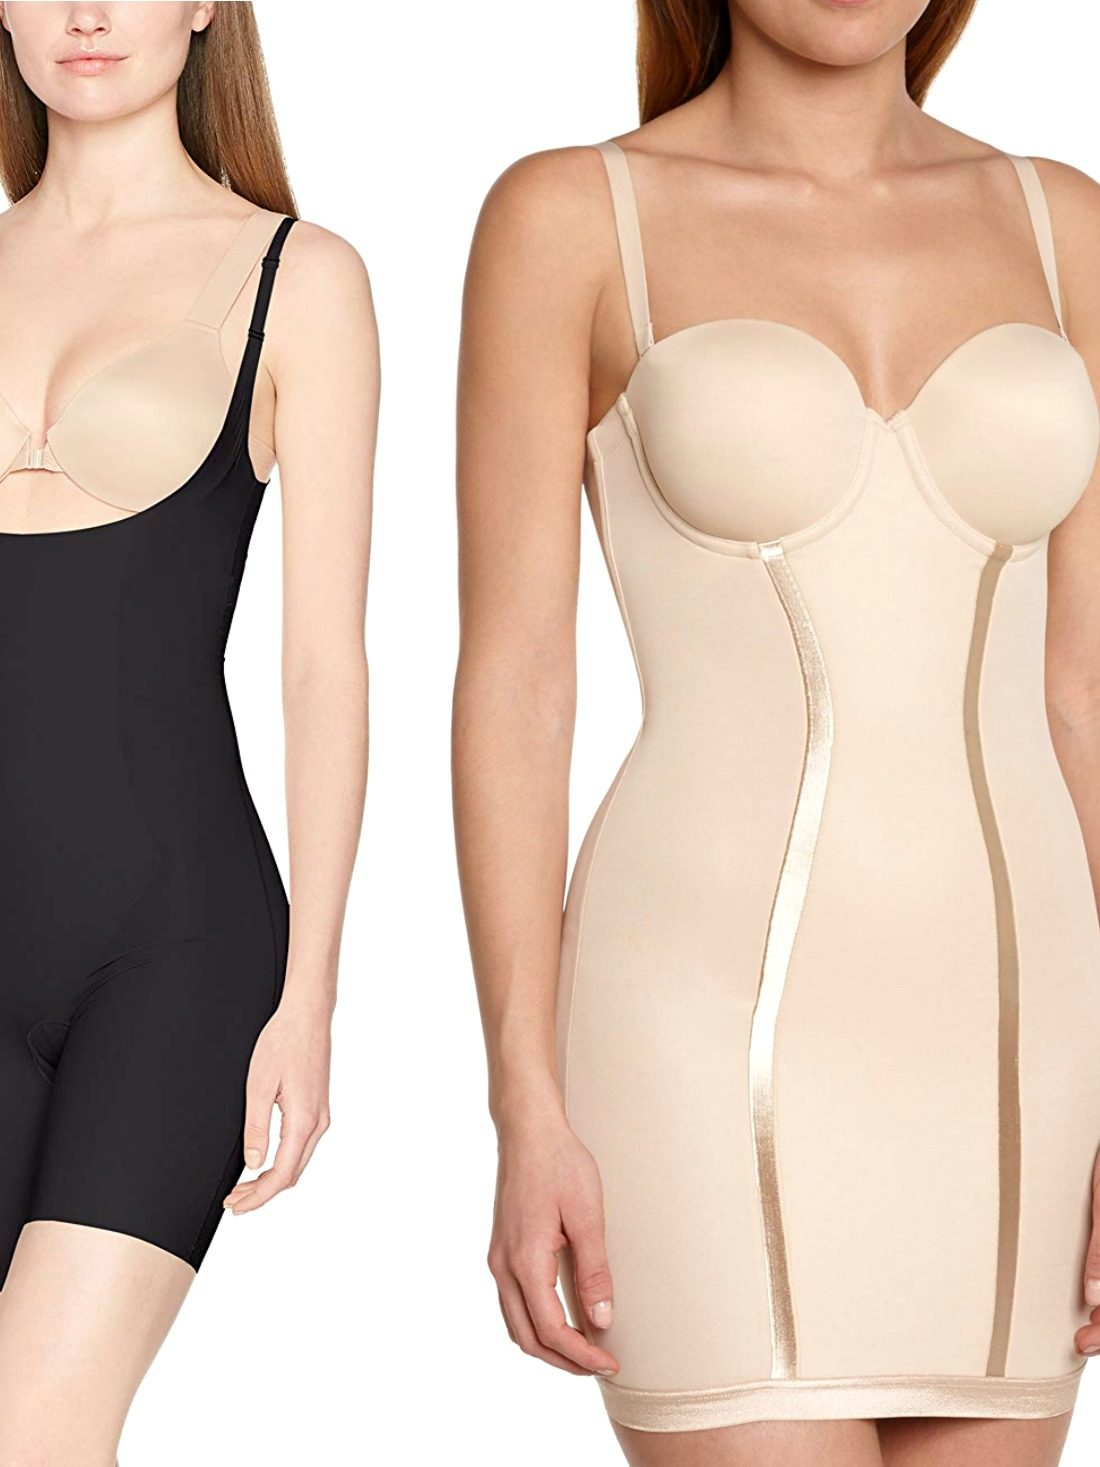 Our choices for the best body shaper for women are ranked by real women. They bid you flatness and fullness all in the right places. Read on to learn more about these options!